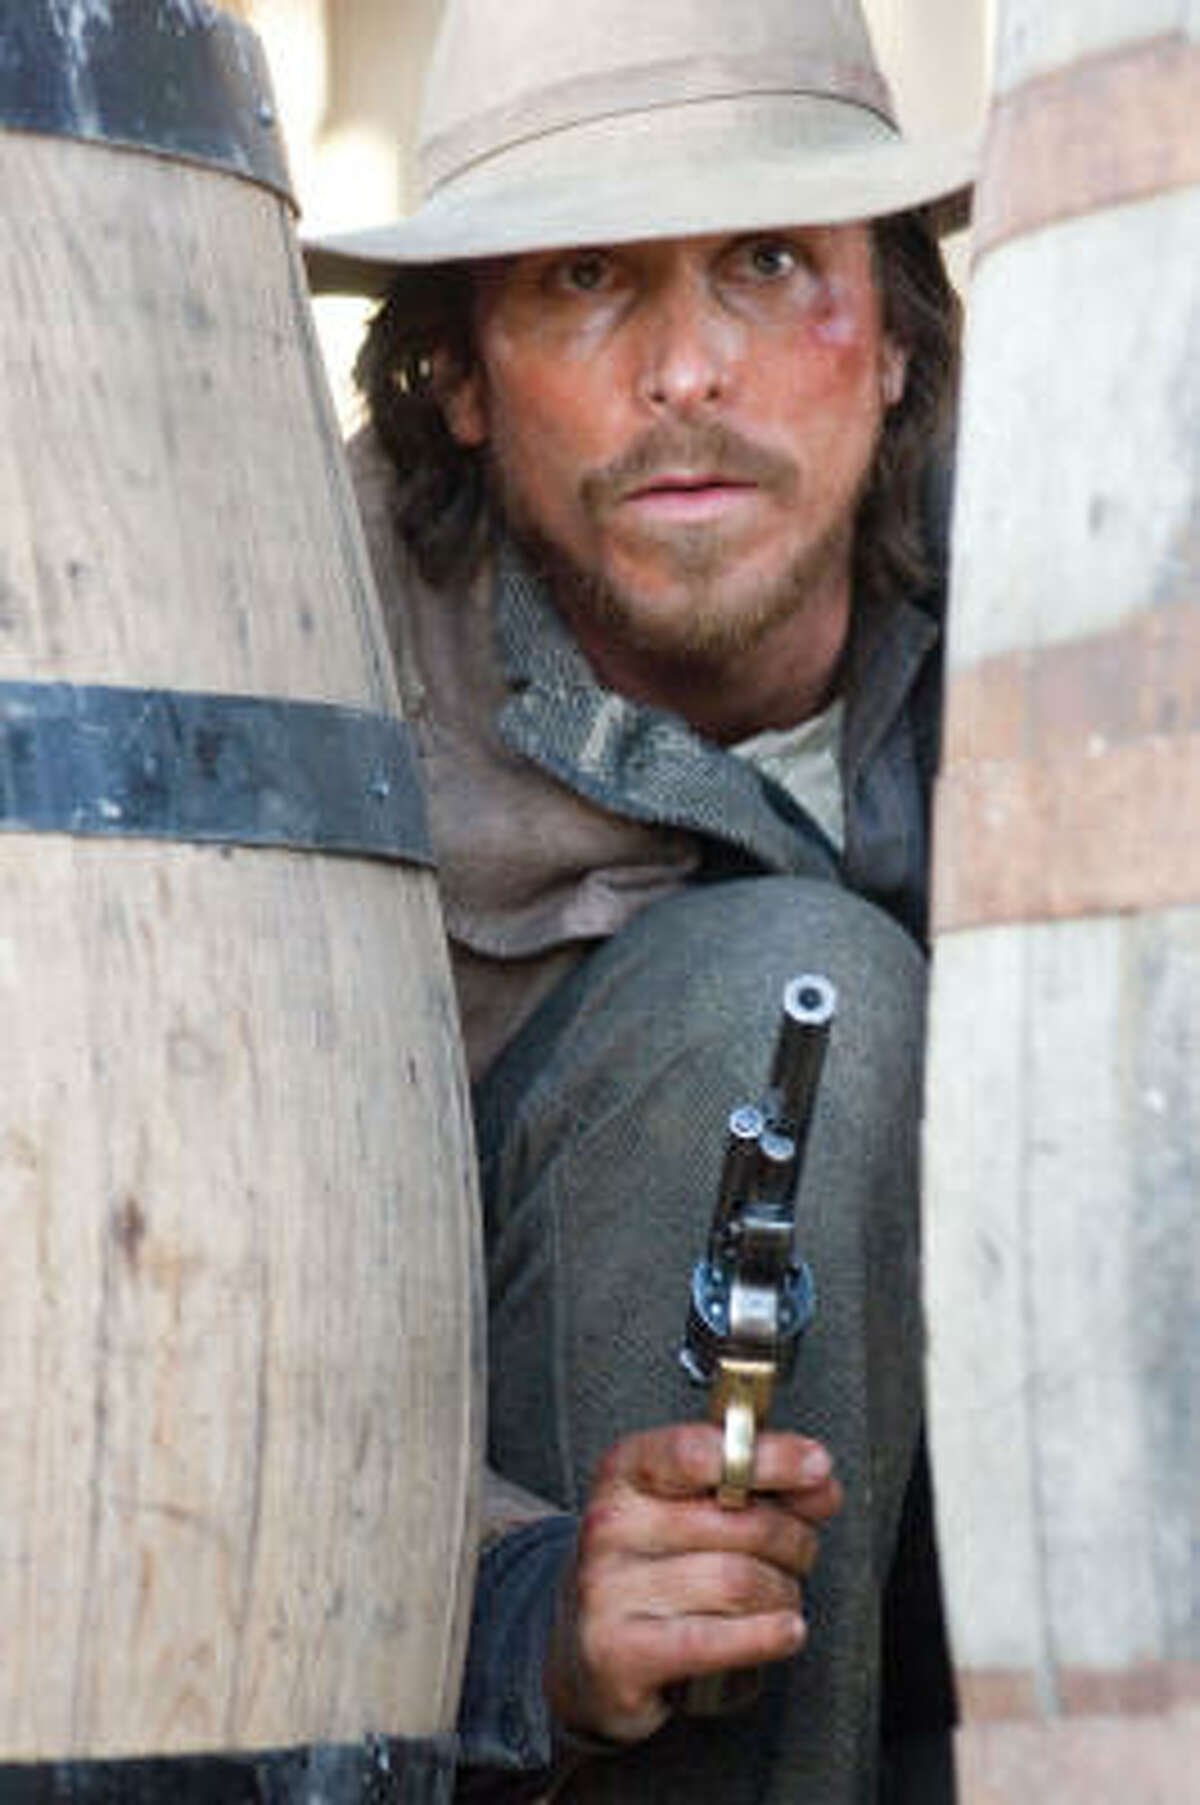 Christian Bale stars as Dan Evans, a one-legged former Union soldier who's deep in debt, in 3:10 to Yuma.